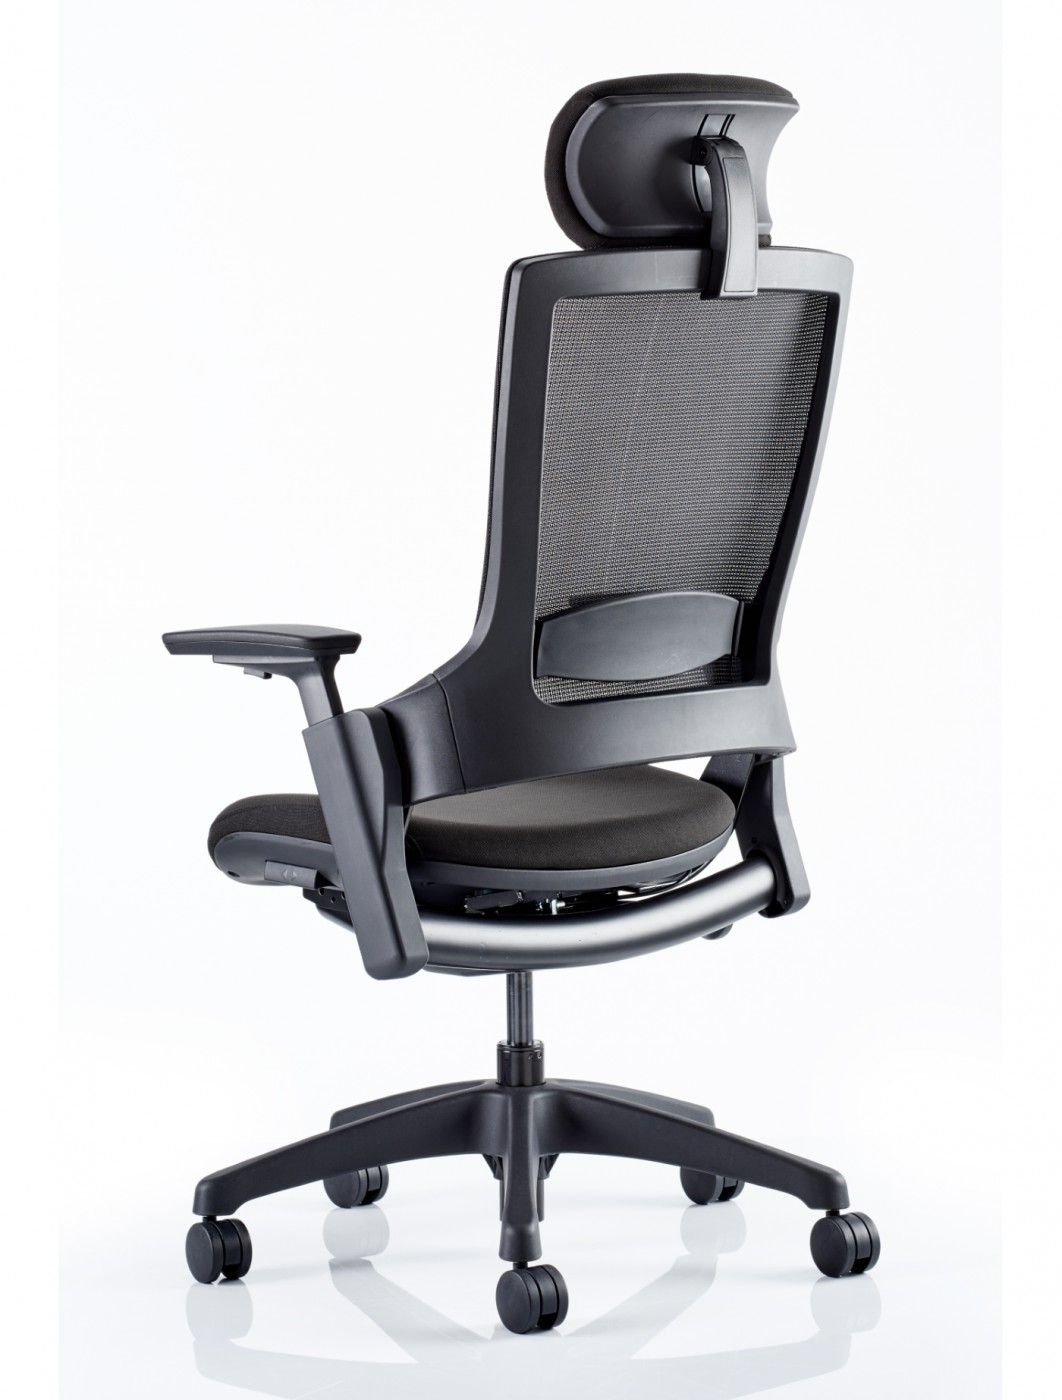 office chairs molet task exec mesh office chair kc0276 121